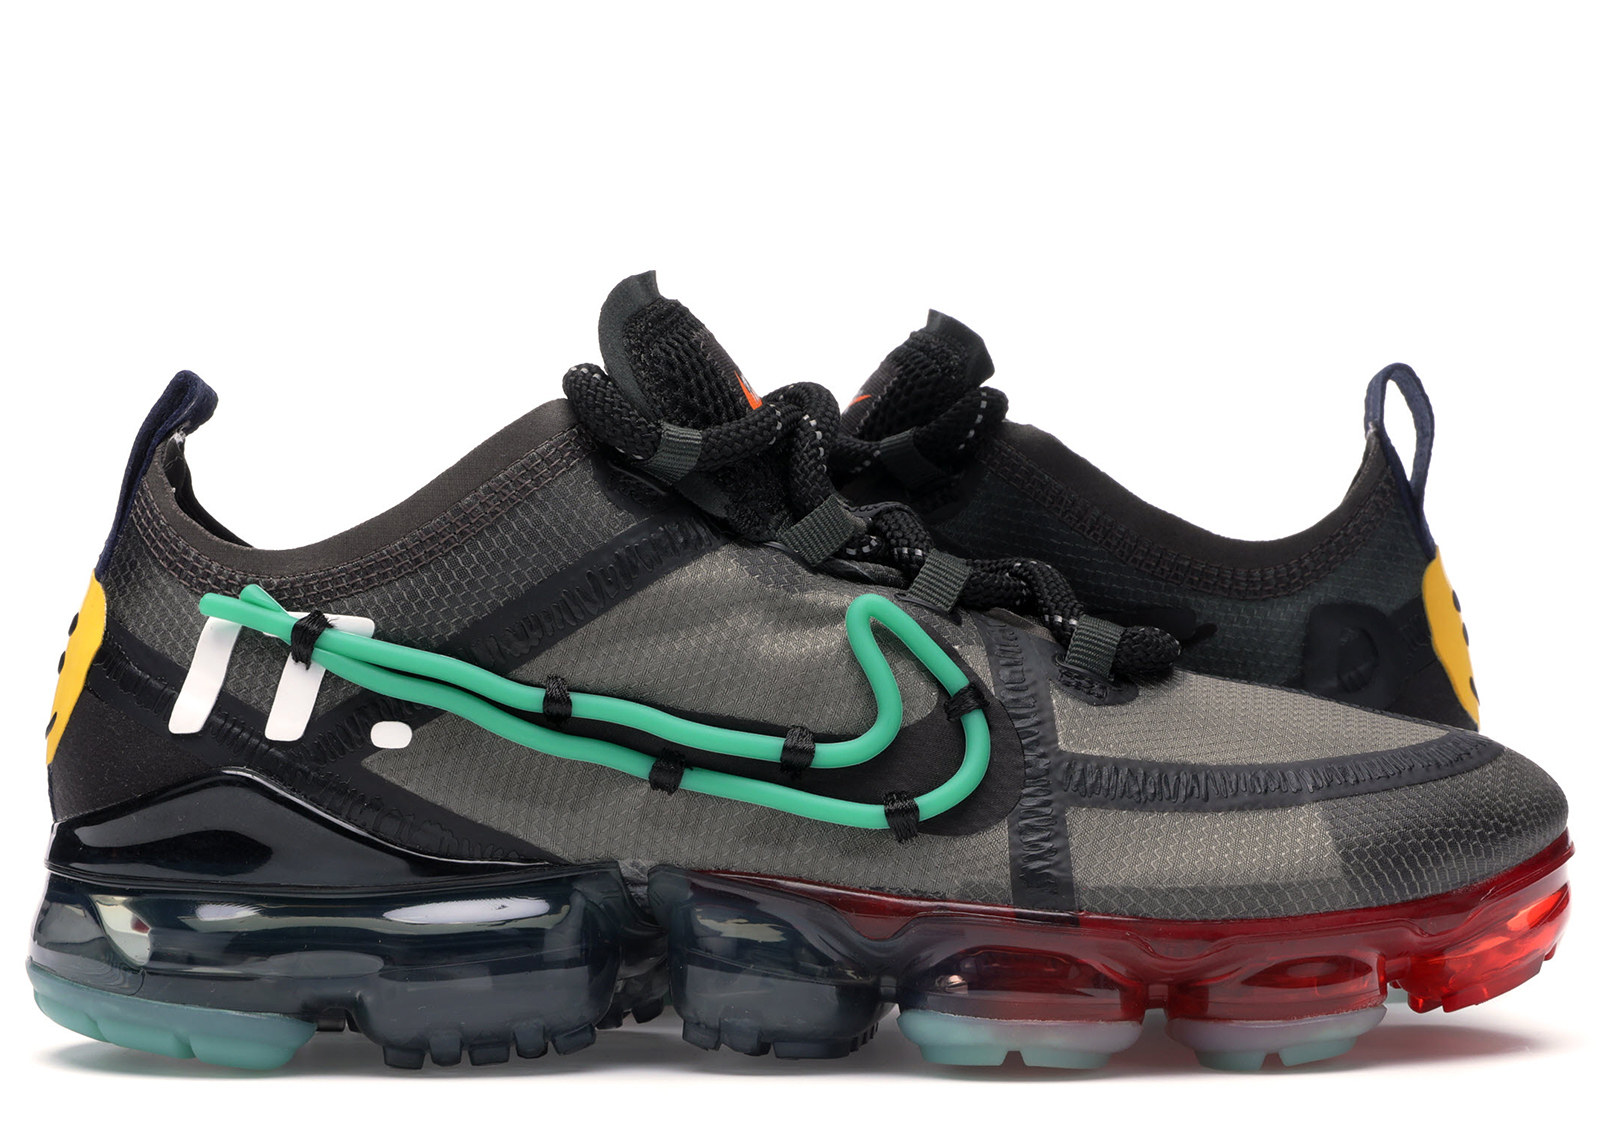 Buy Nike Air Max VaporMax Shoes & Deadstock Sneakers